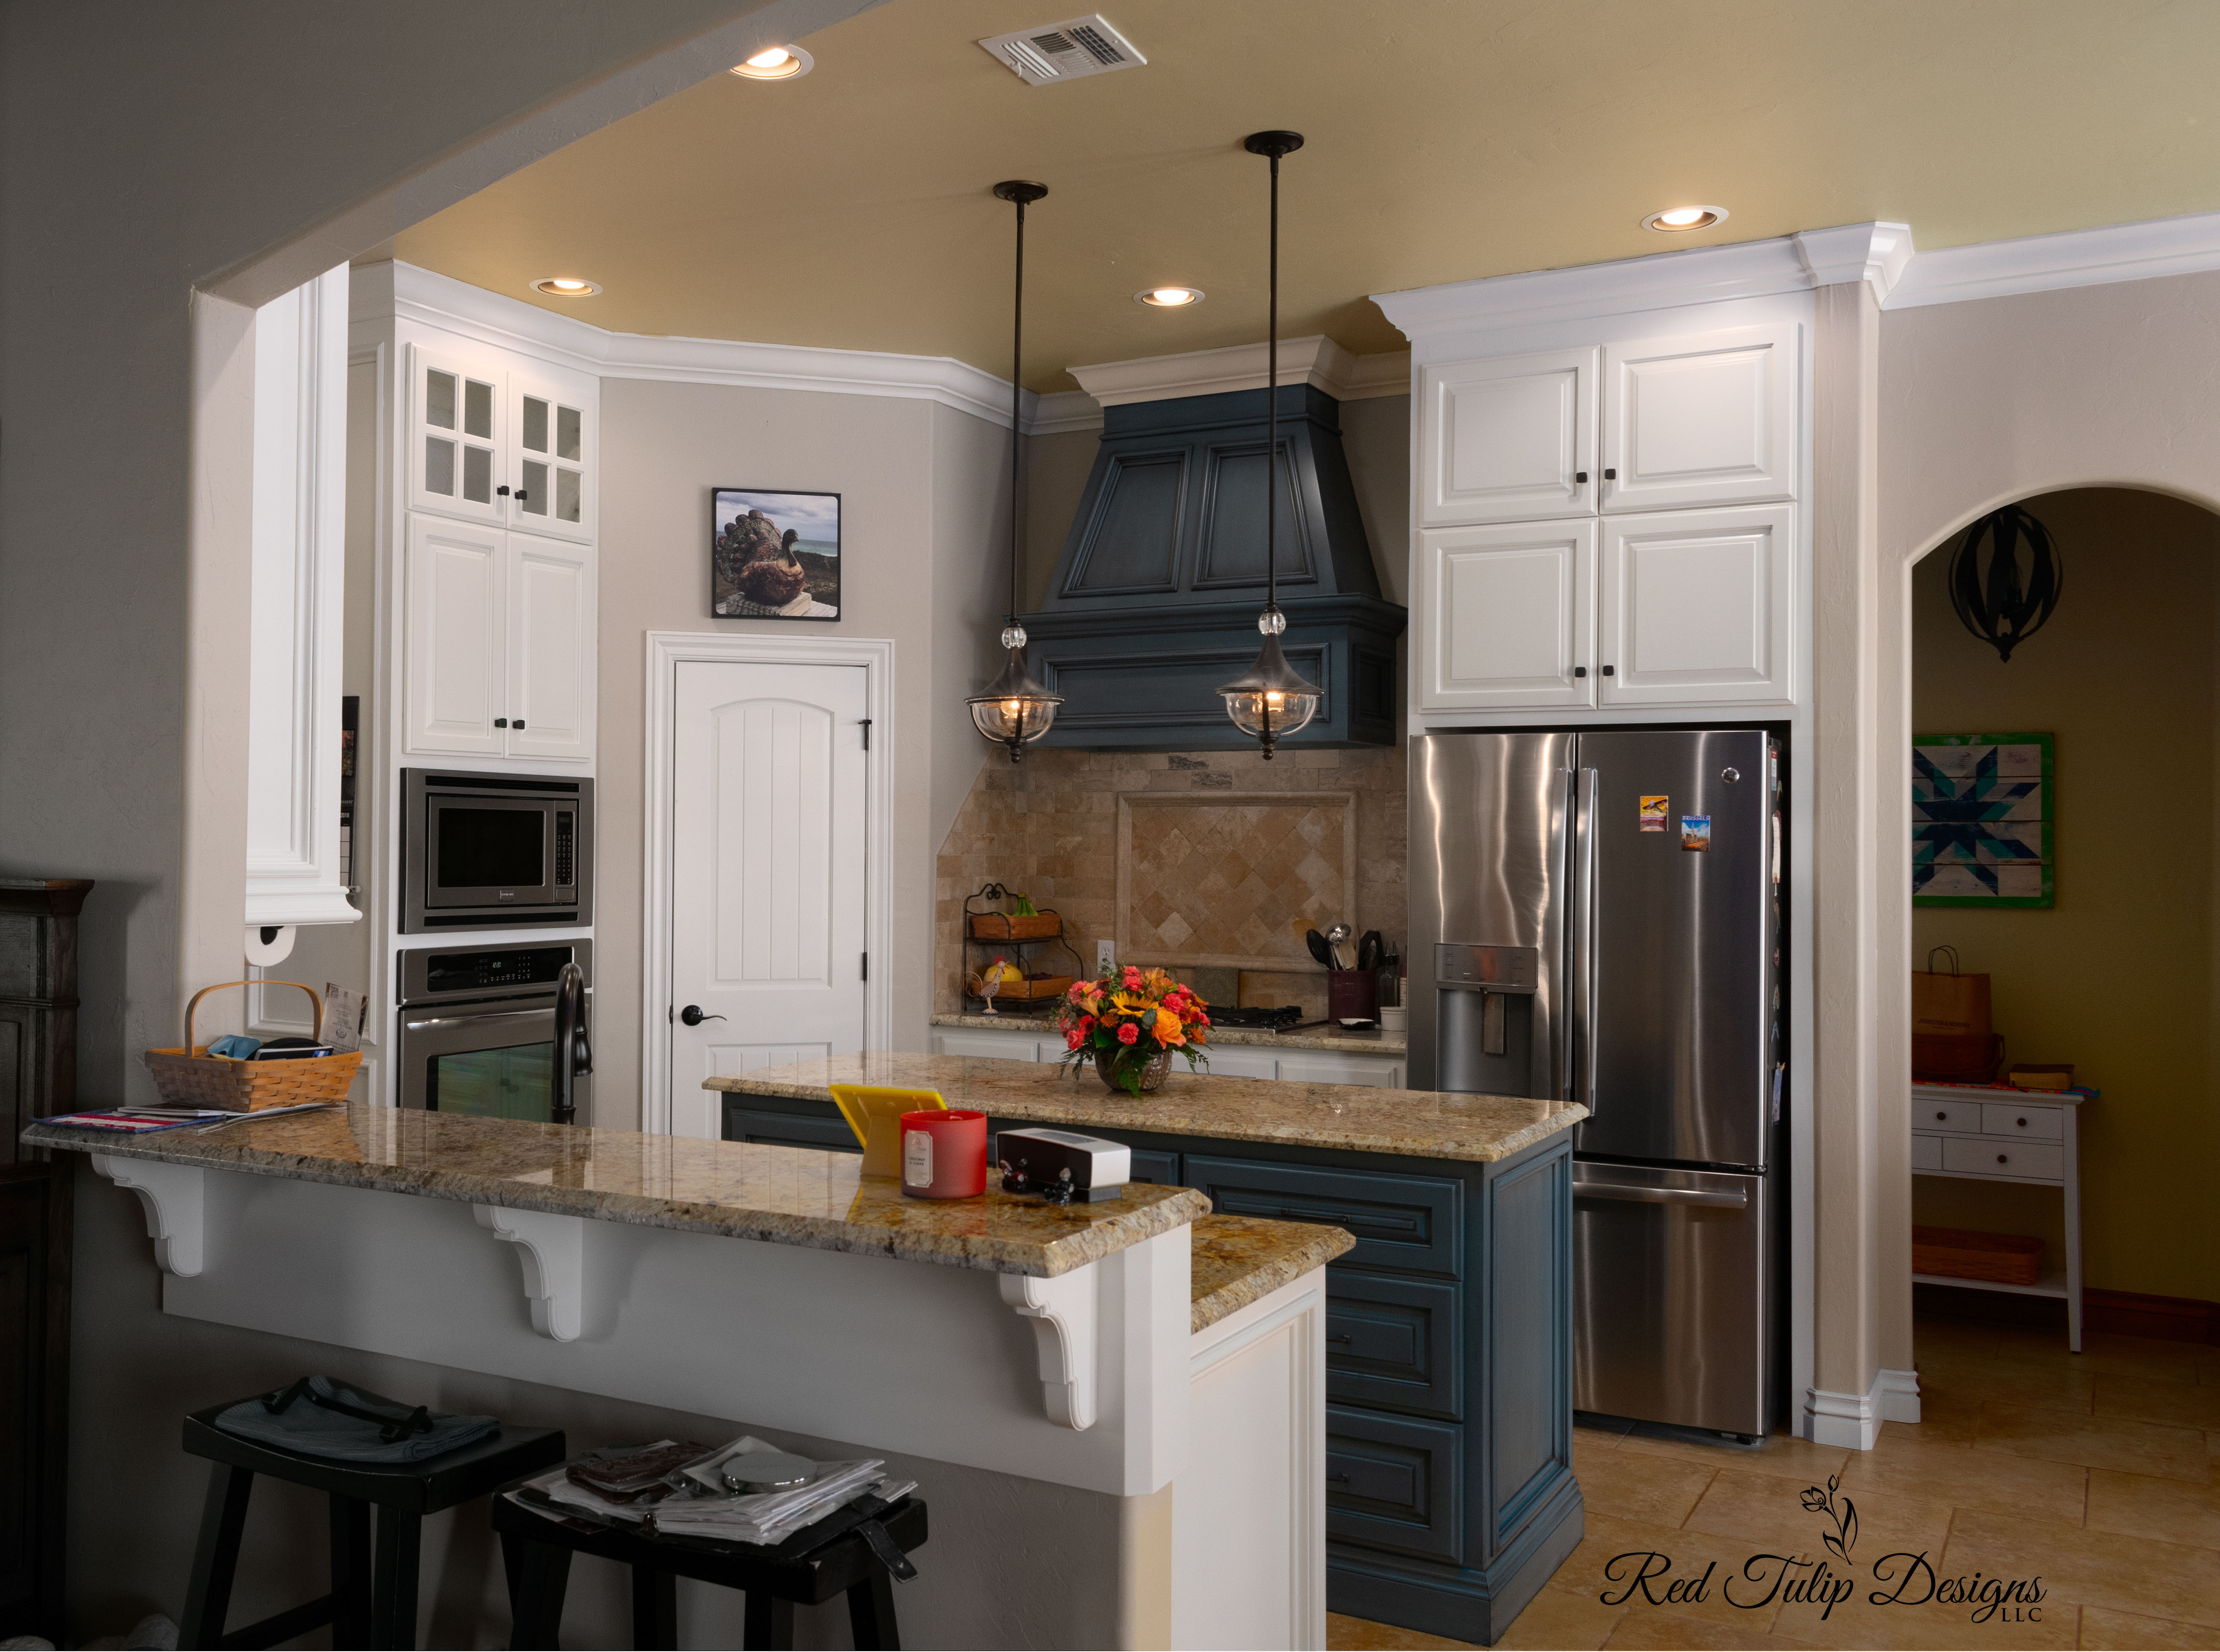 Kitchen_With_Blue_Range_Hood_And_Powder_